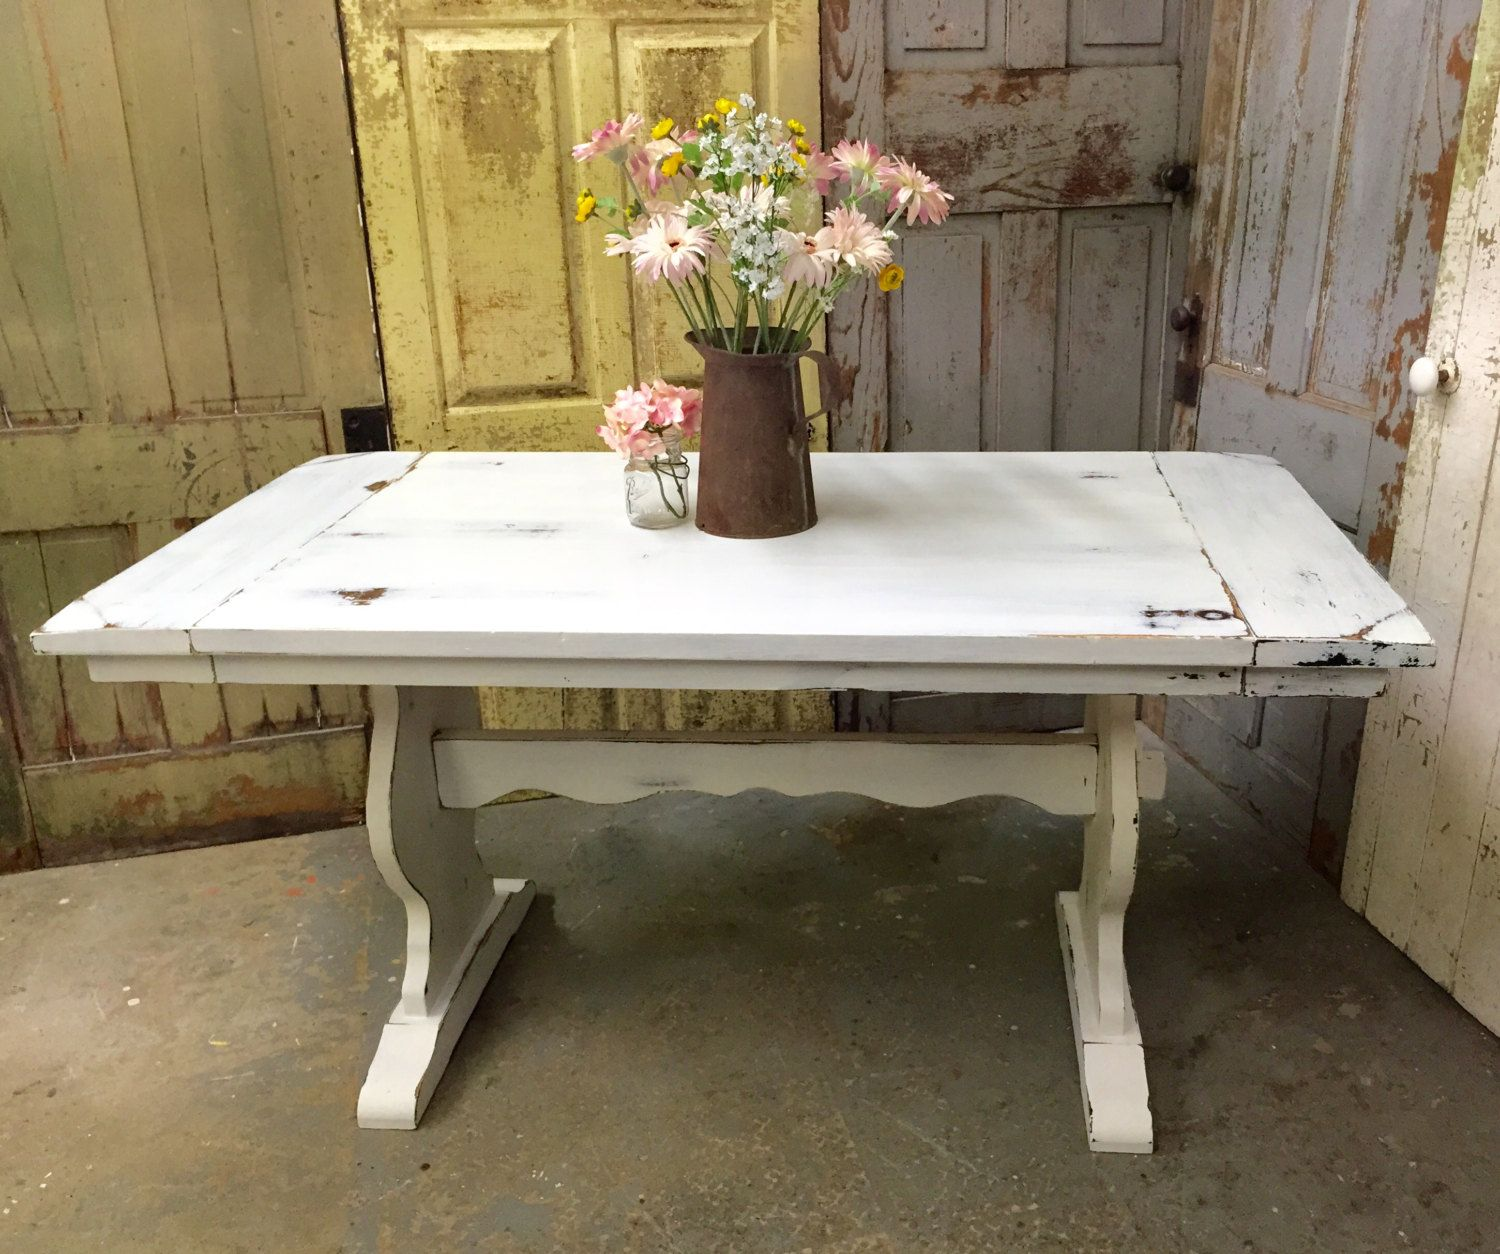 white kitchen table White Kitchen Table Rustic Dining Room Table Painted Furniture Beach Cottage Furniture